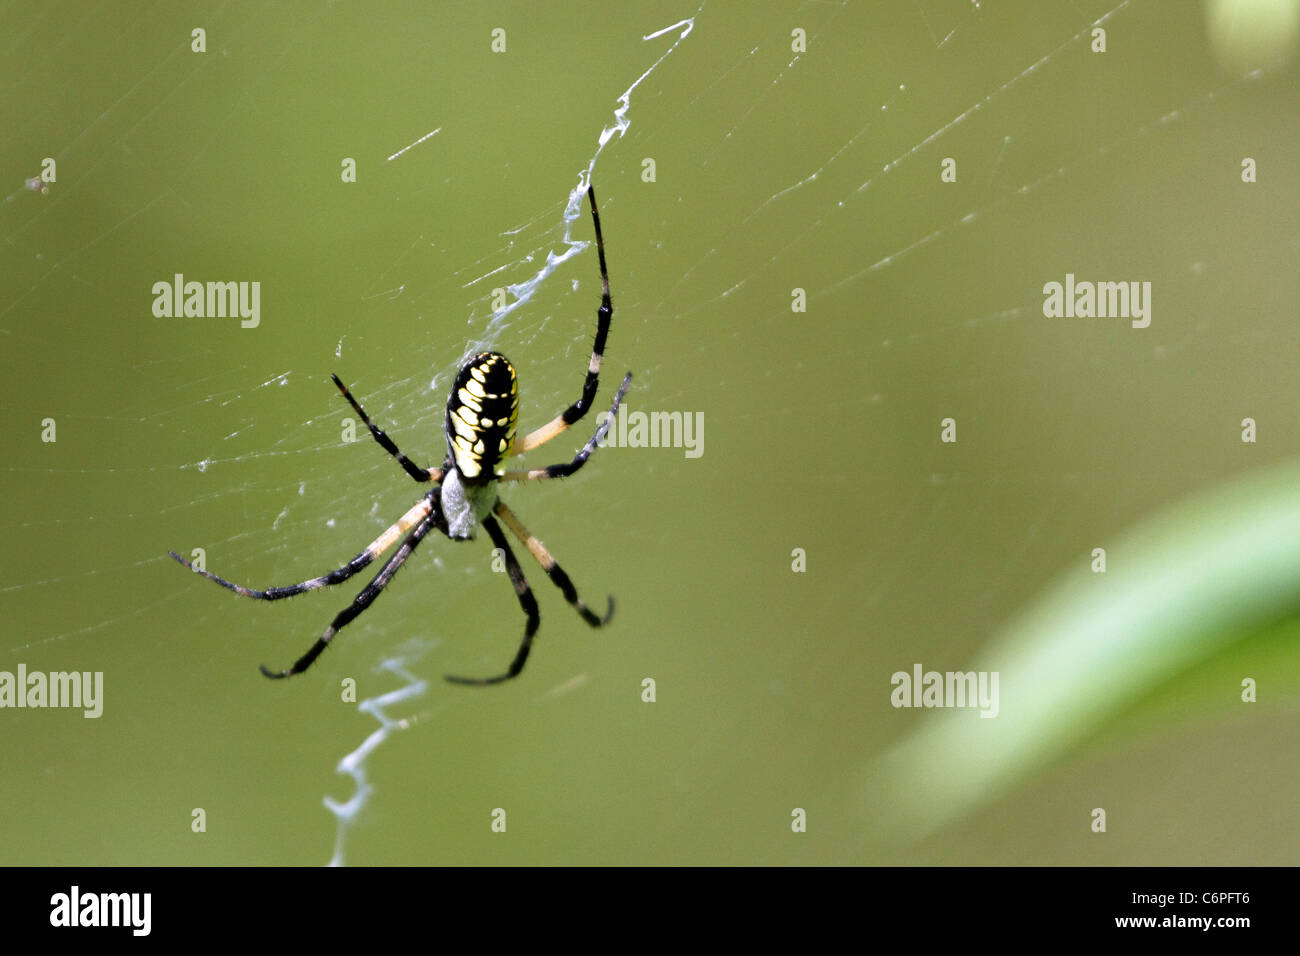 A Black and Yellow Garden Spider also known as a Writing Spider or a Corn Spider, Argiope aurantia. - Stock Image